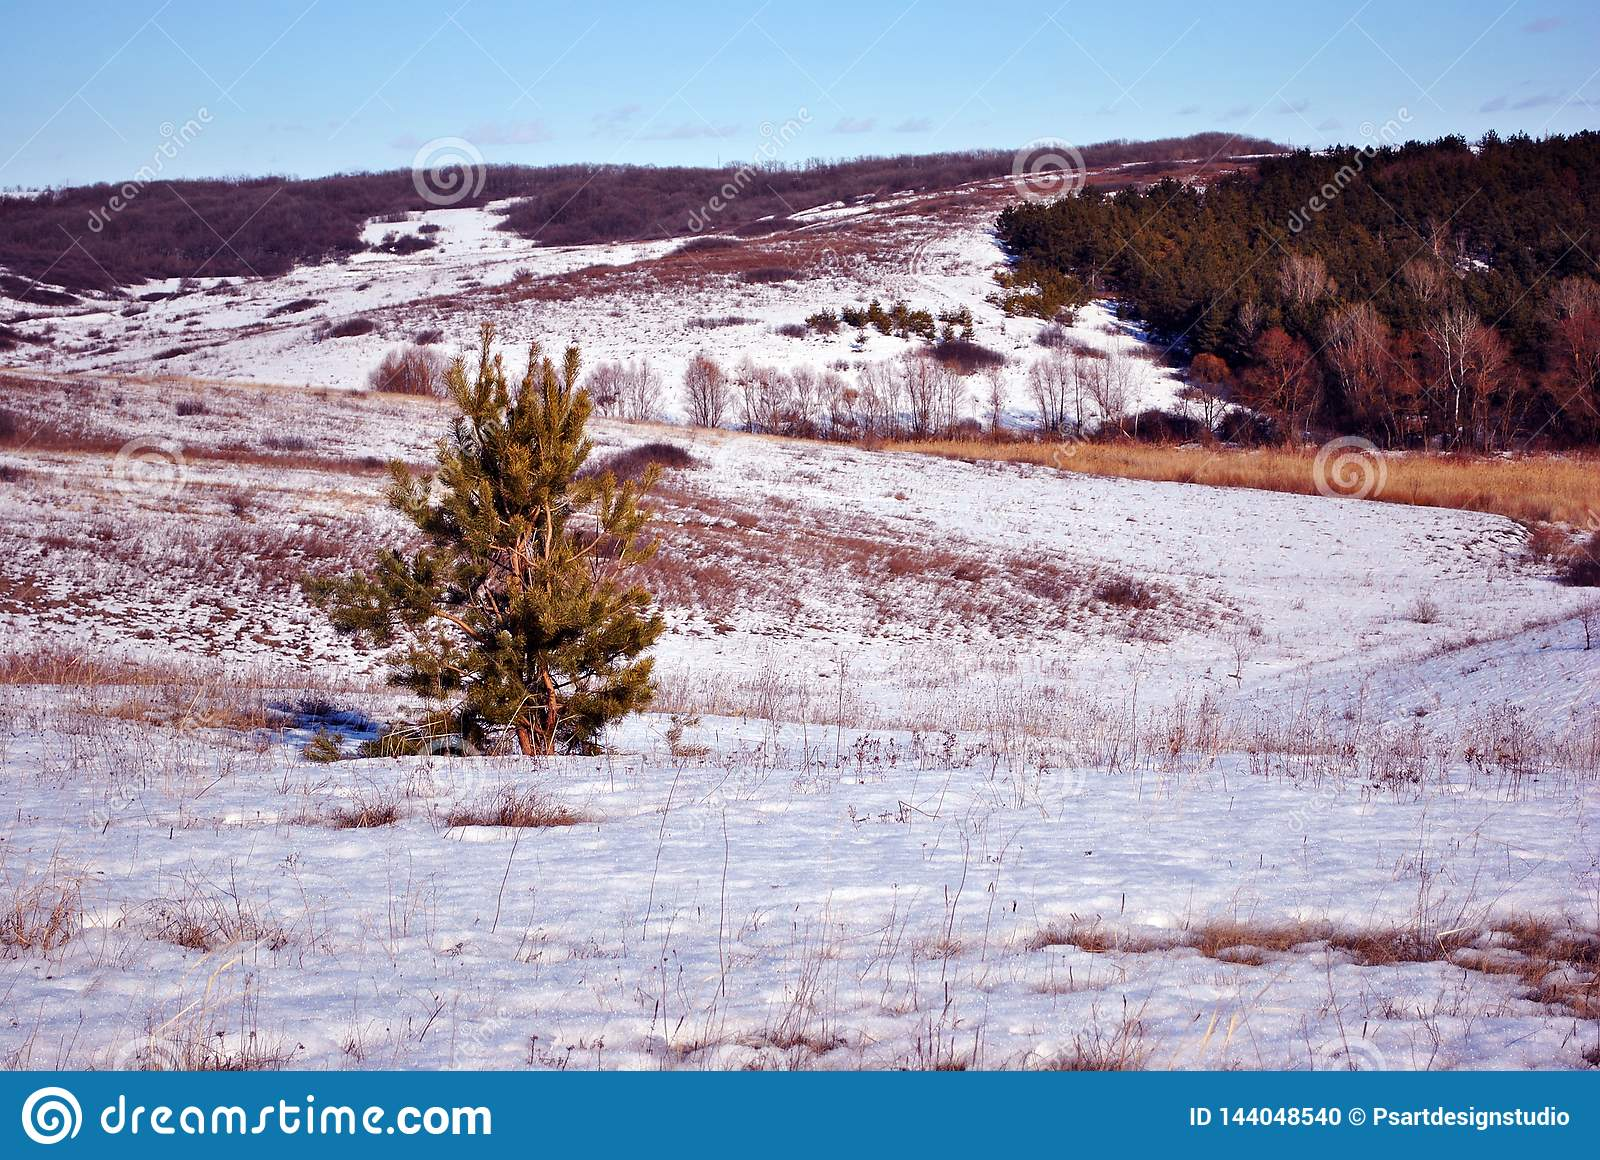 Small pine tree on hill covered with snow, forest and sky on background